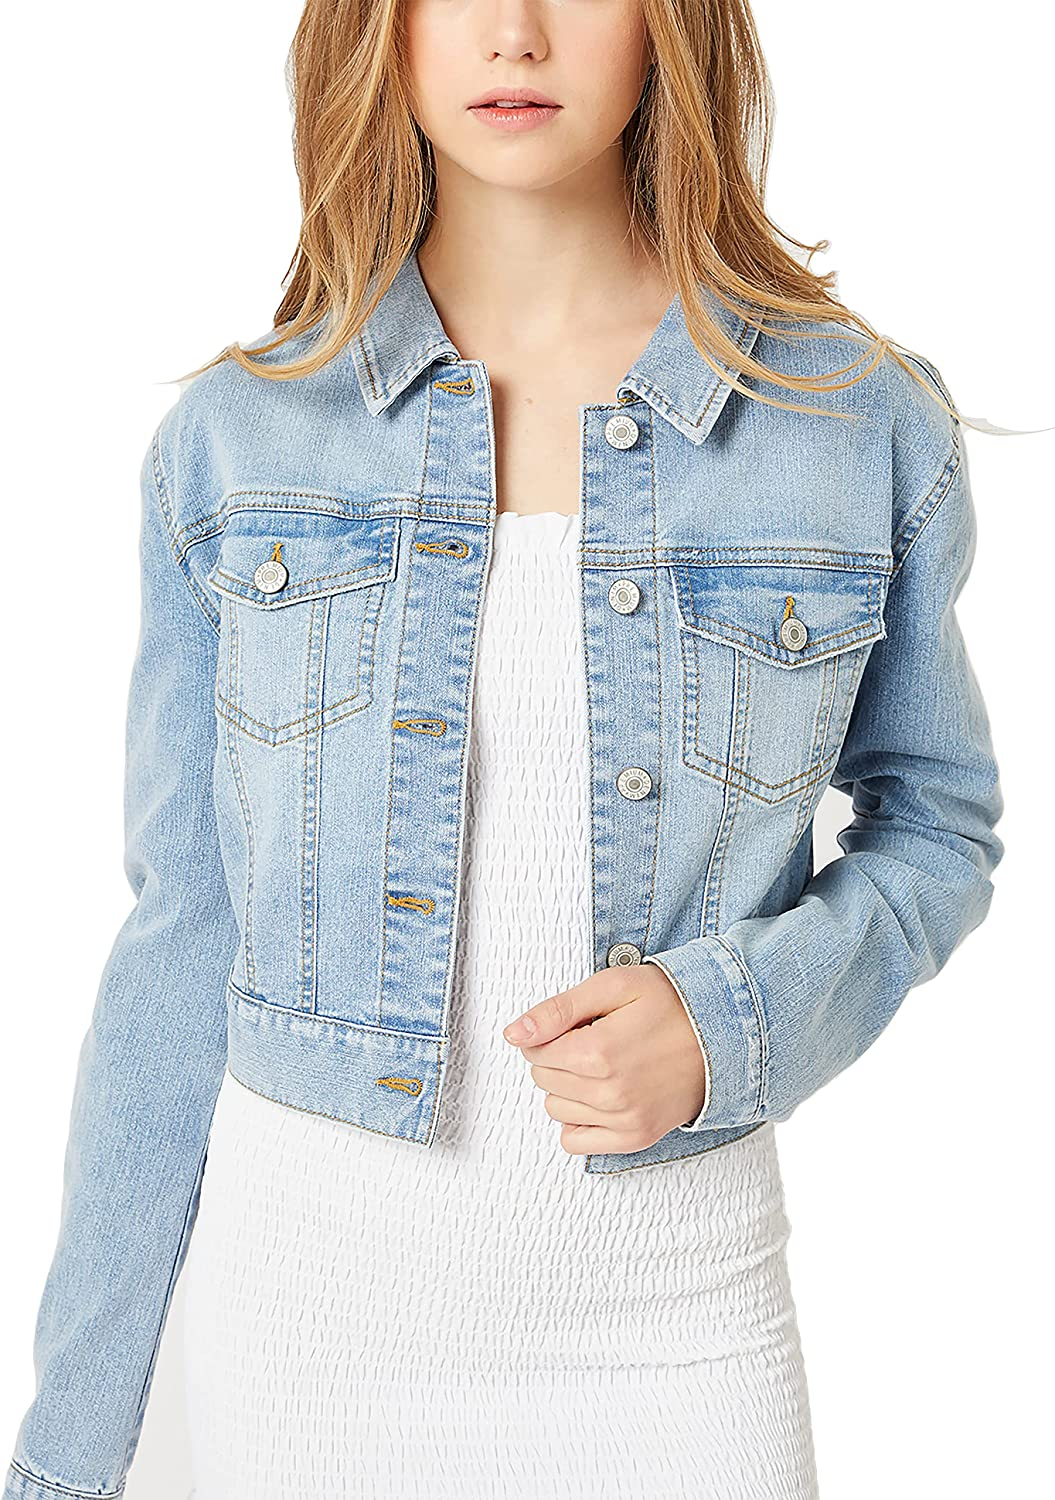 Women's Casual Vintage Distressed Cropped Denim Jean Sleeve Product Long San Diego Mall